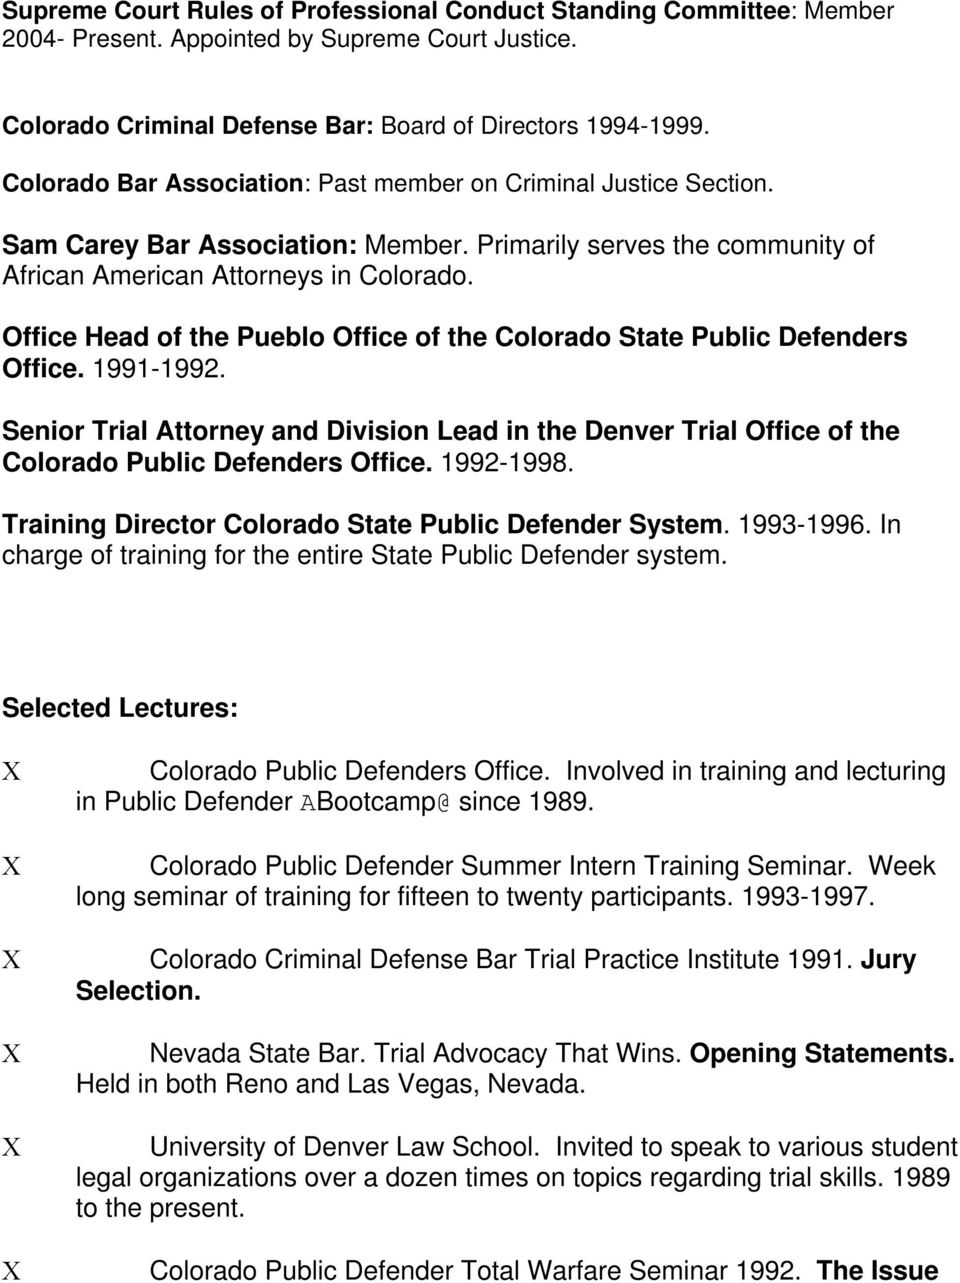 Office Head of the Pueblo Office of the Colorado State Public Defenders Office. 1991-1992. Senior Trial Attorney and Division Lead in the Denver Trial Office of the Colorado Public Defenders Office.